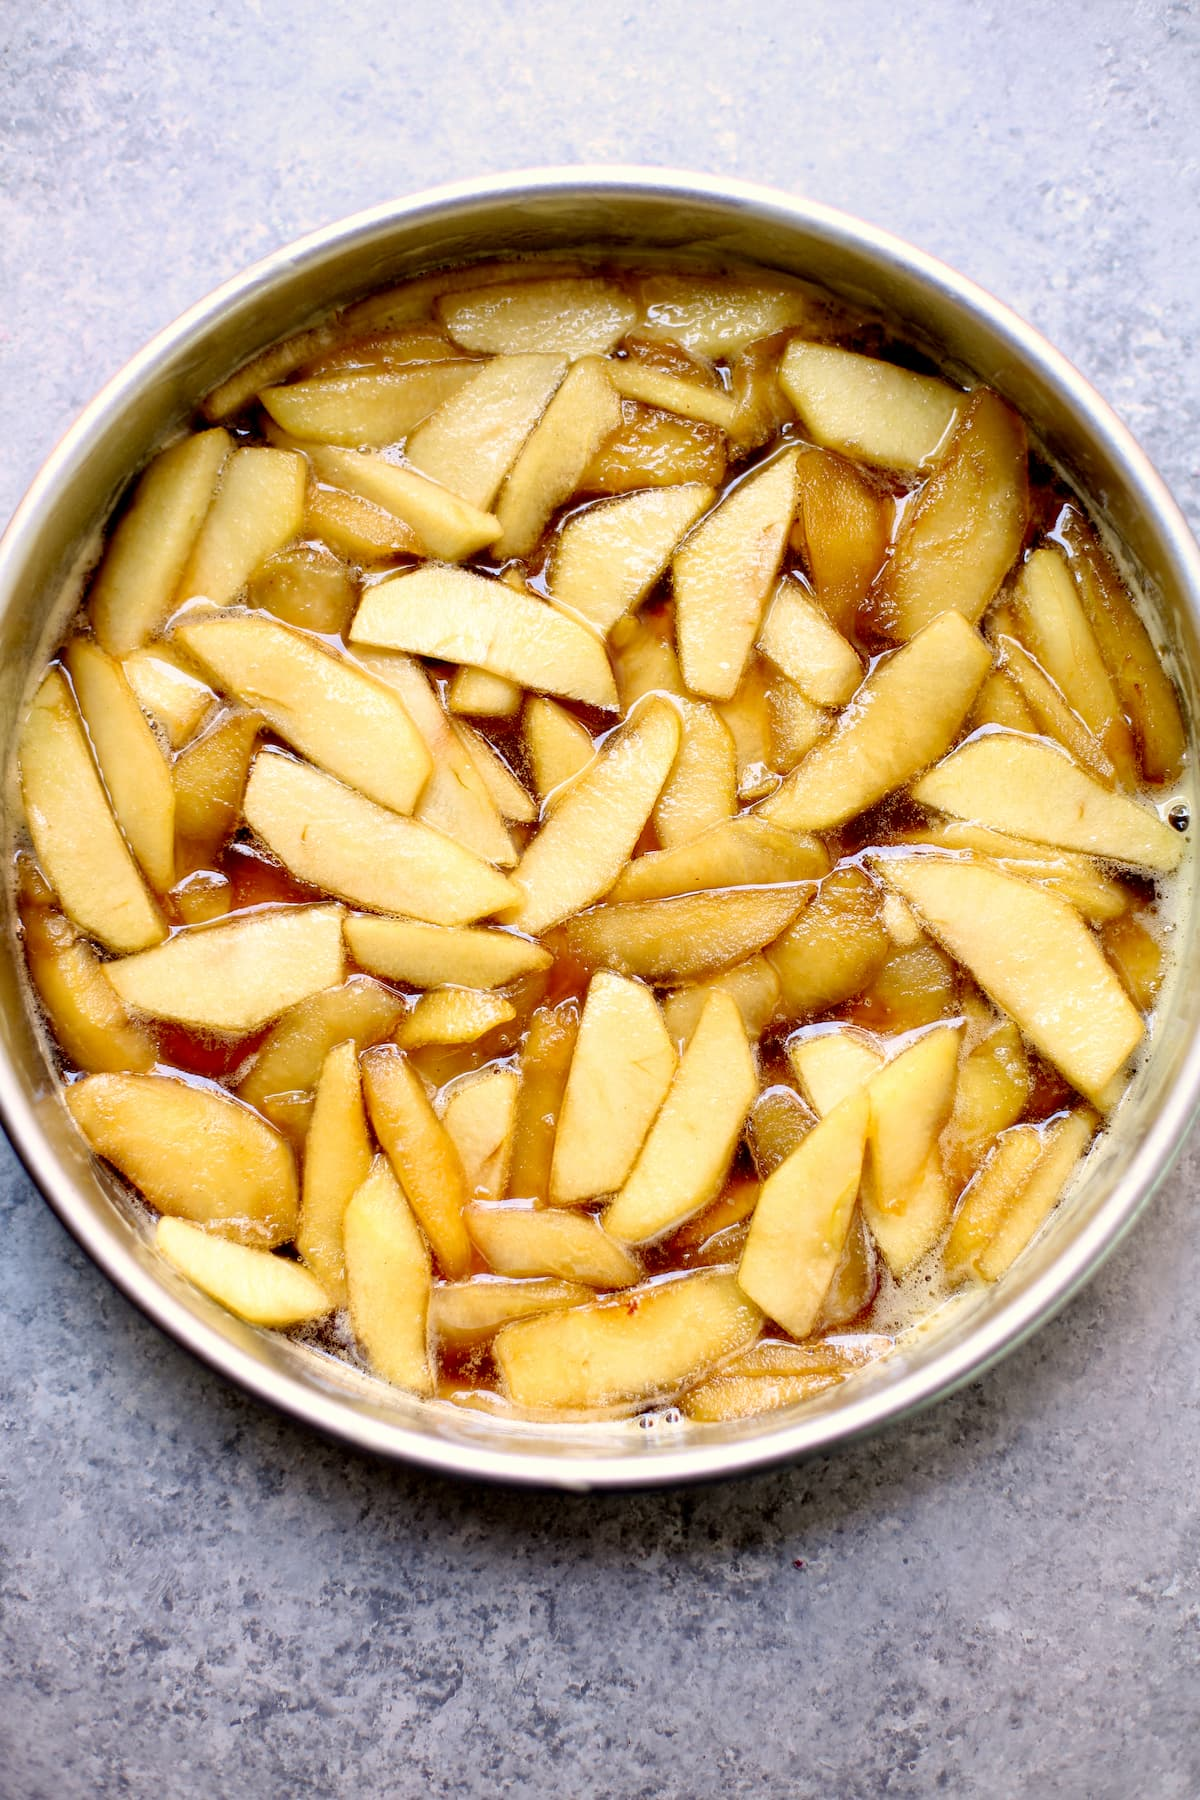 a round baking pan with raw sliced apples on a gray table.